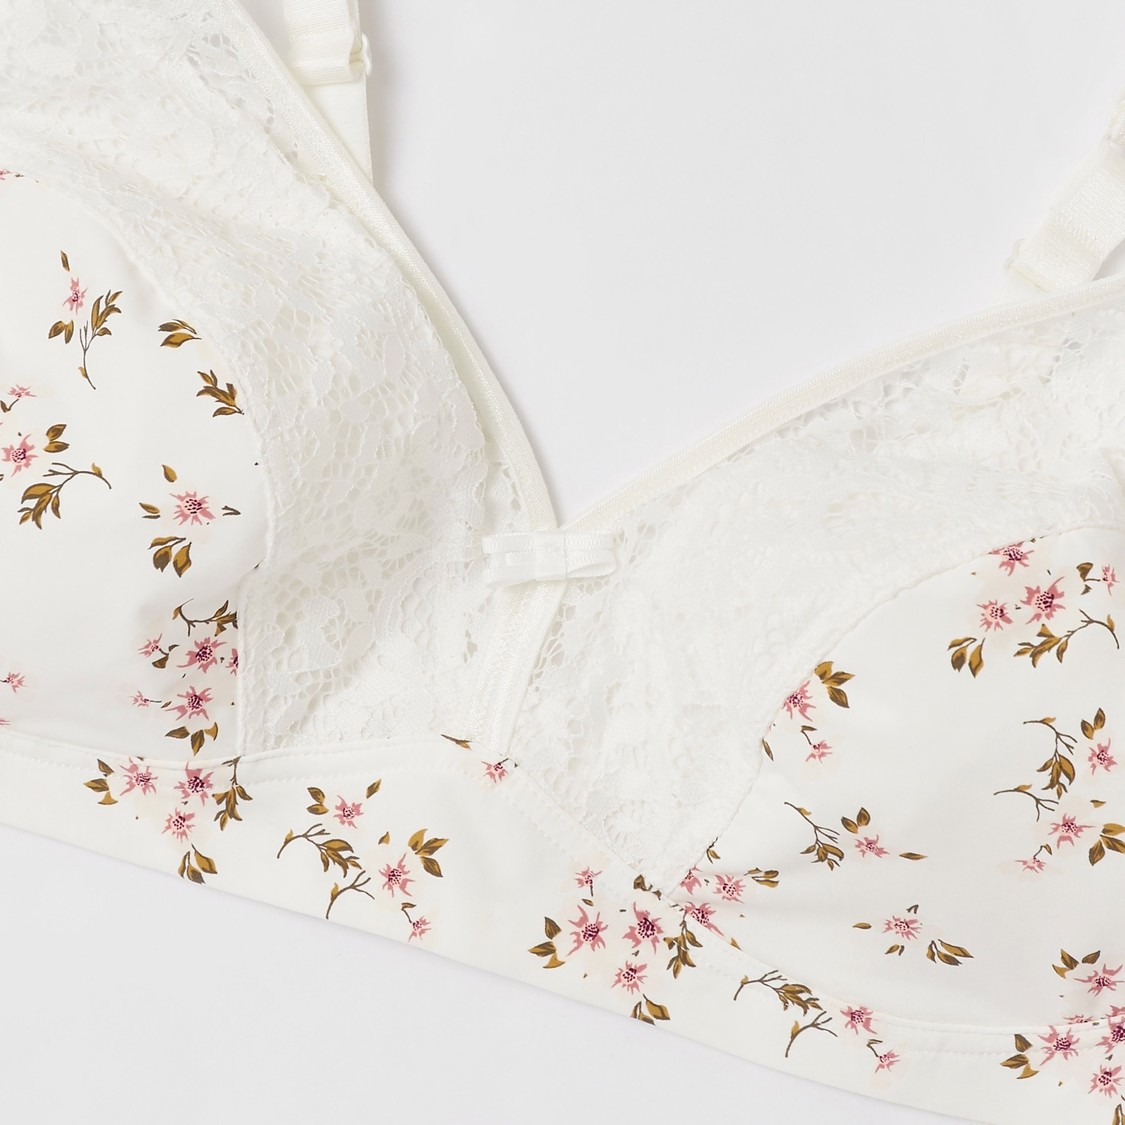 Floral Print Bra with Lace Detail and Adjustable Straps